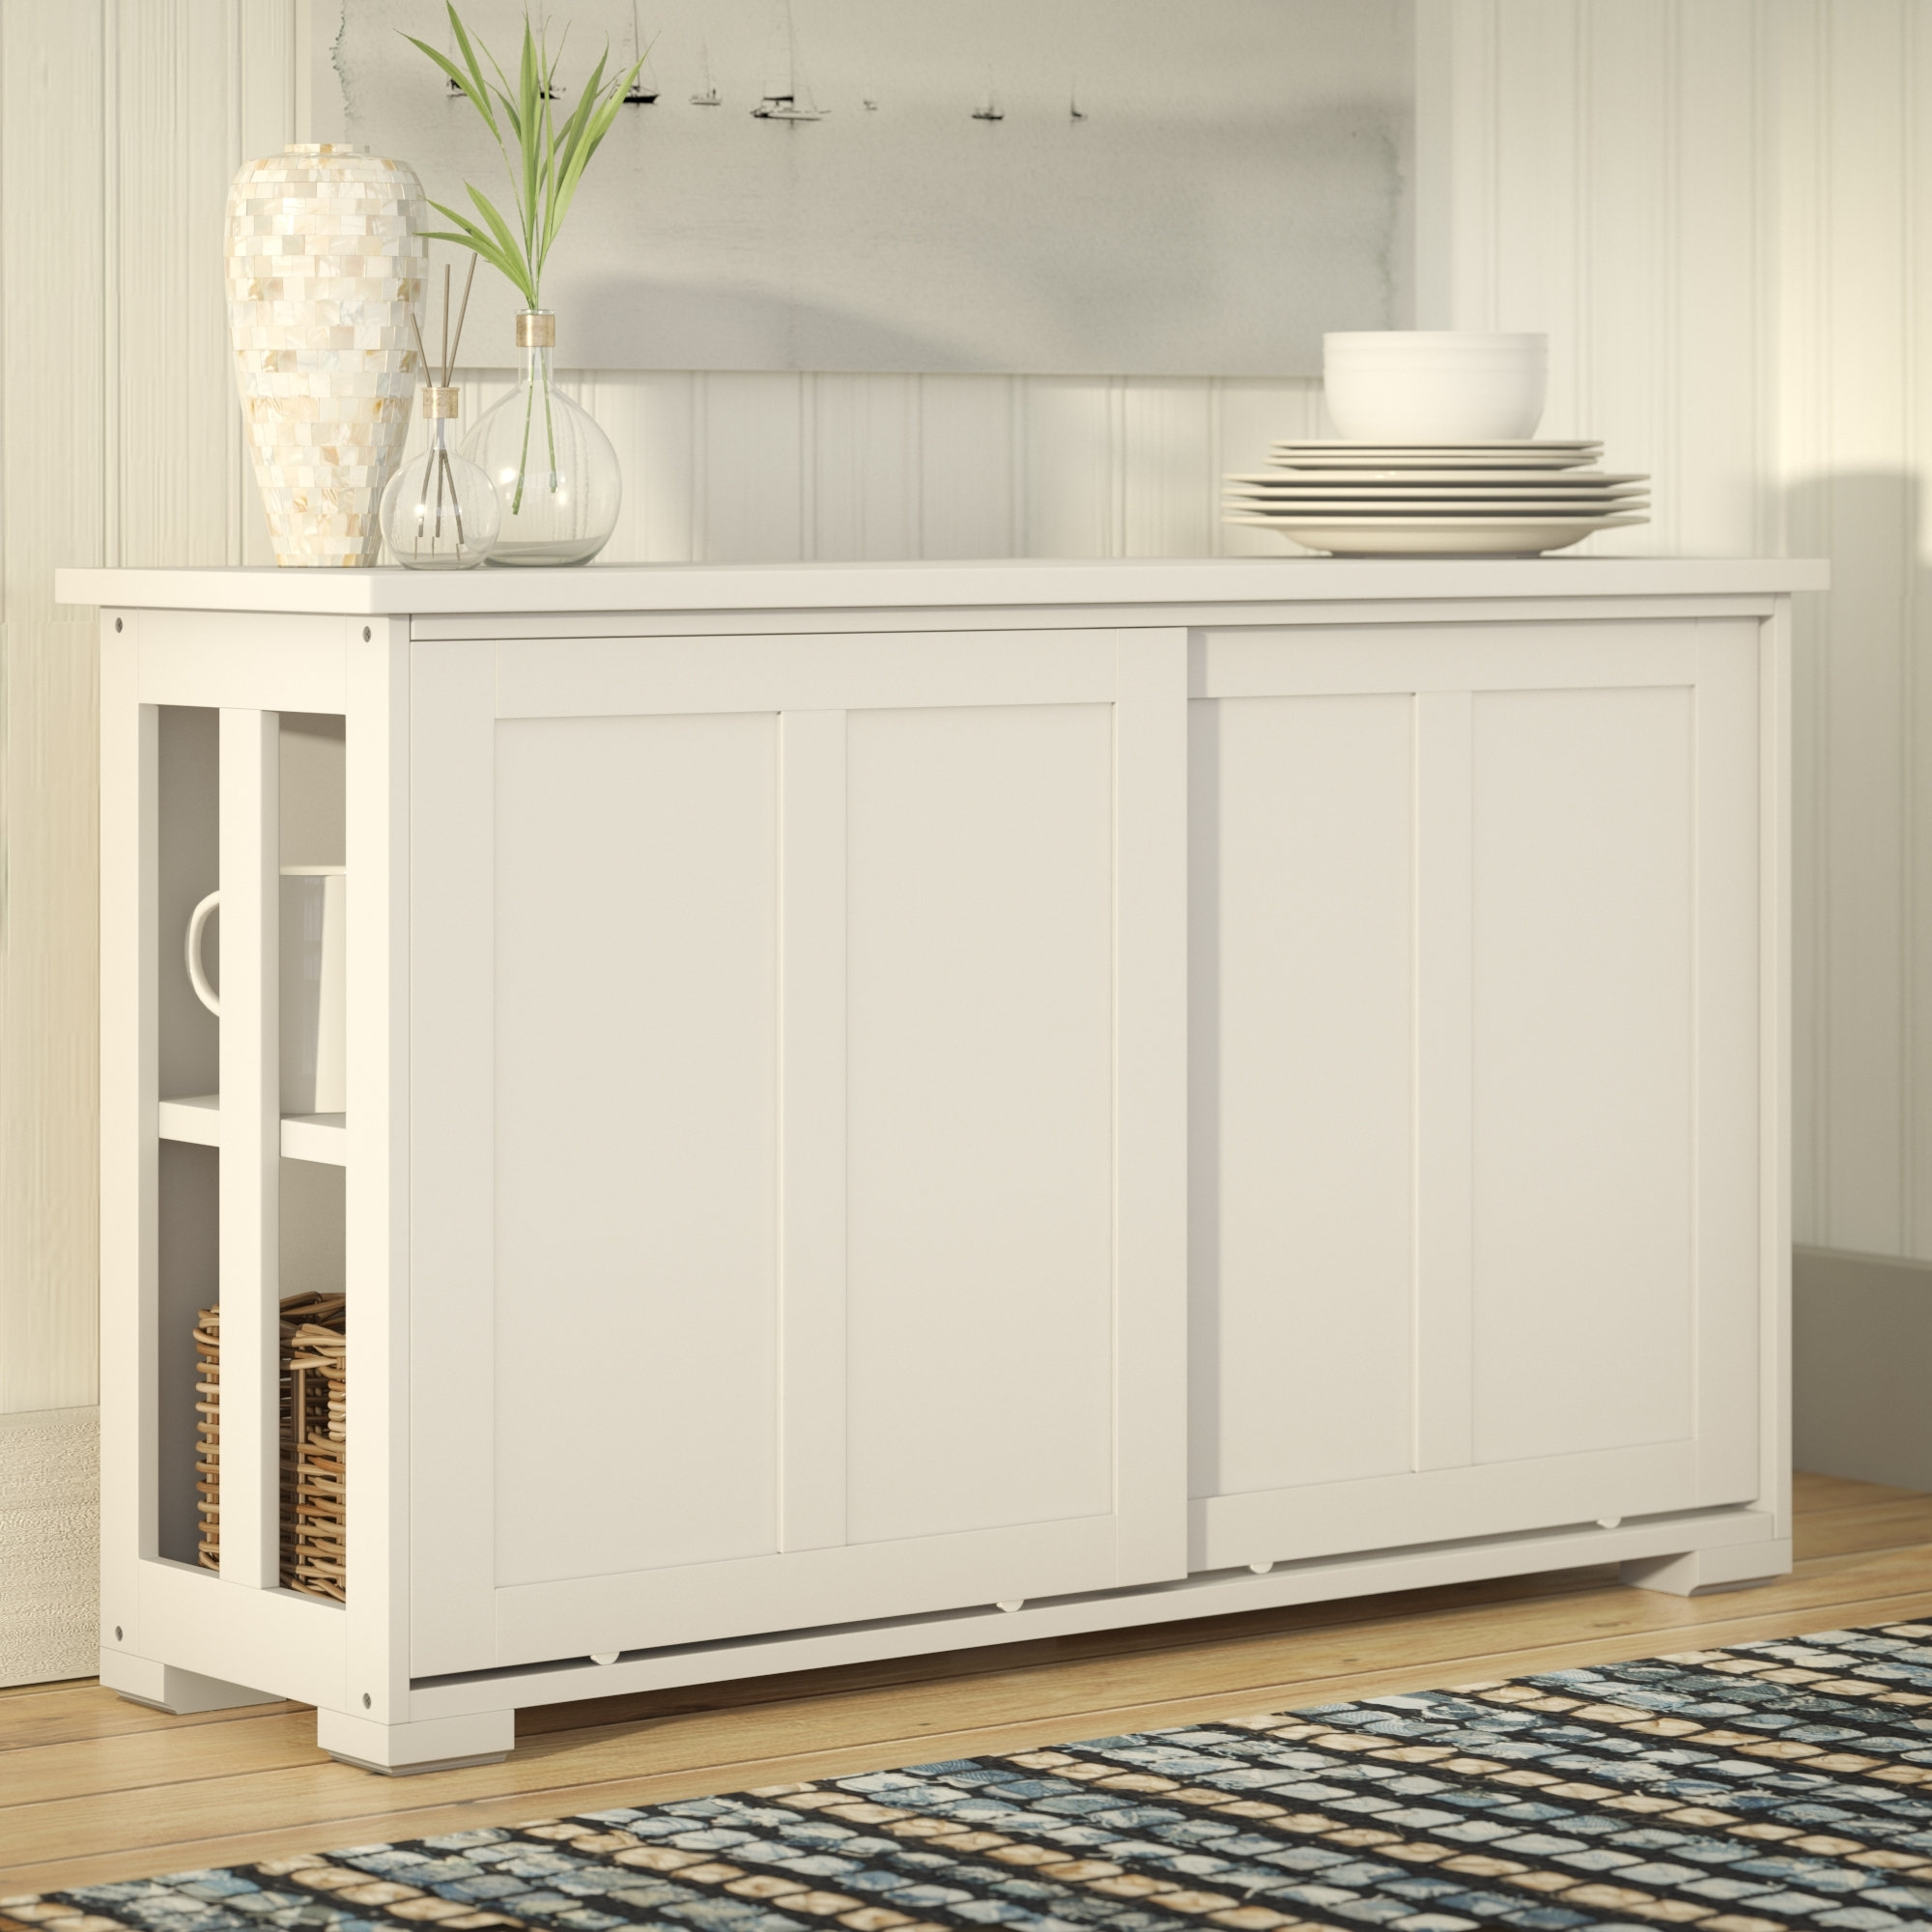 Beachcrest Home South Miami Sideboard & Reviews | Wayfair with regard to Norwood Sideboards (Image 5 of 30)